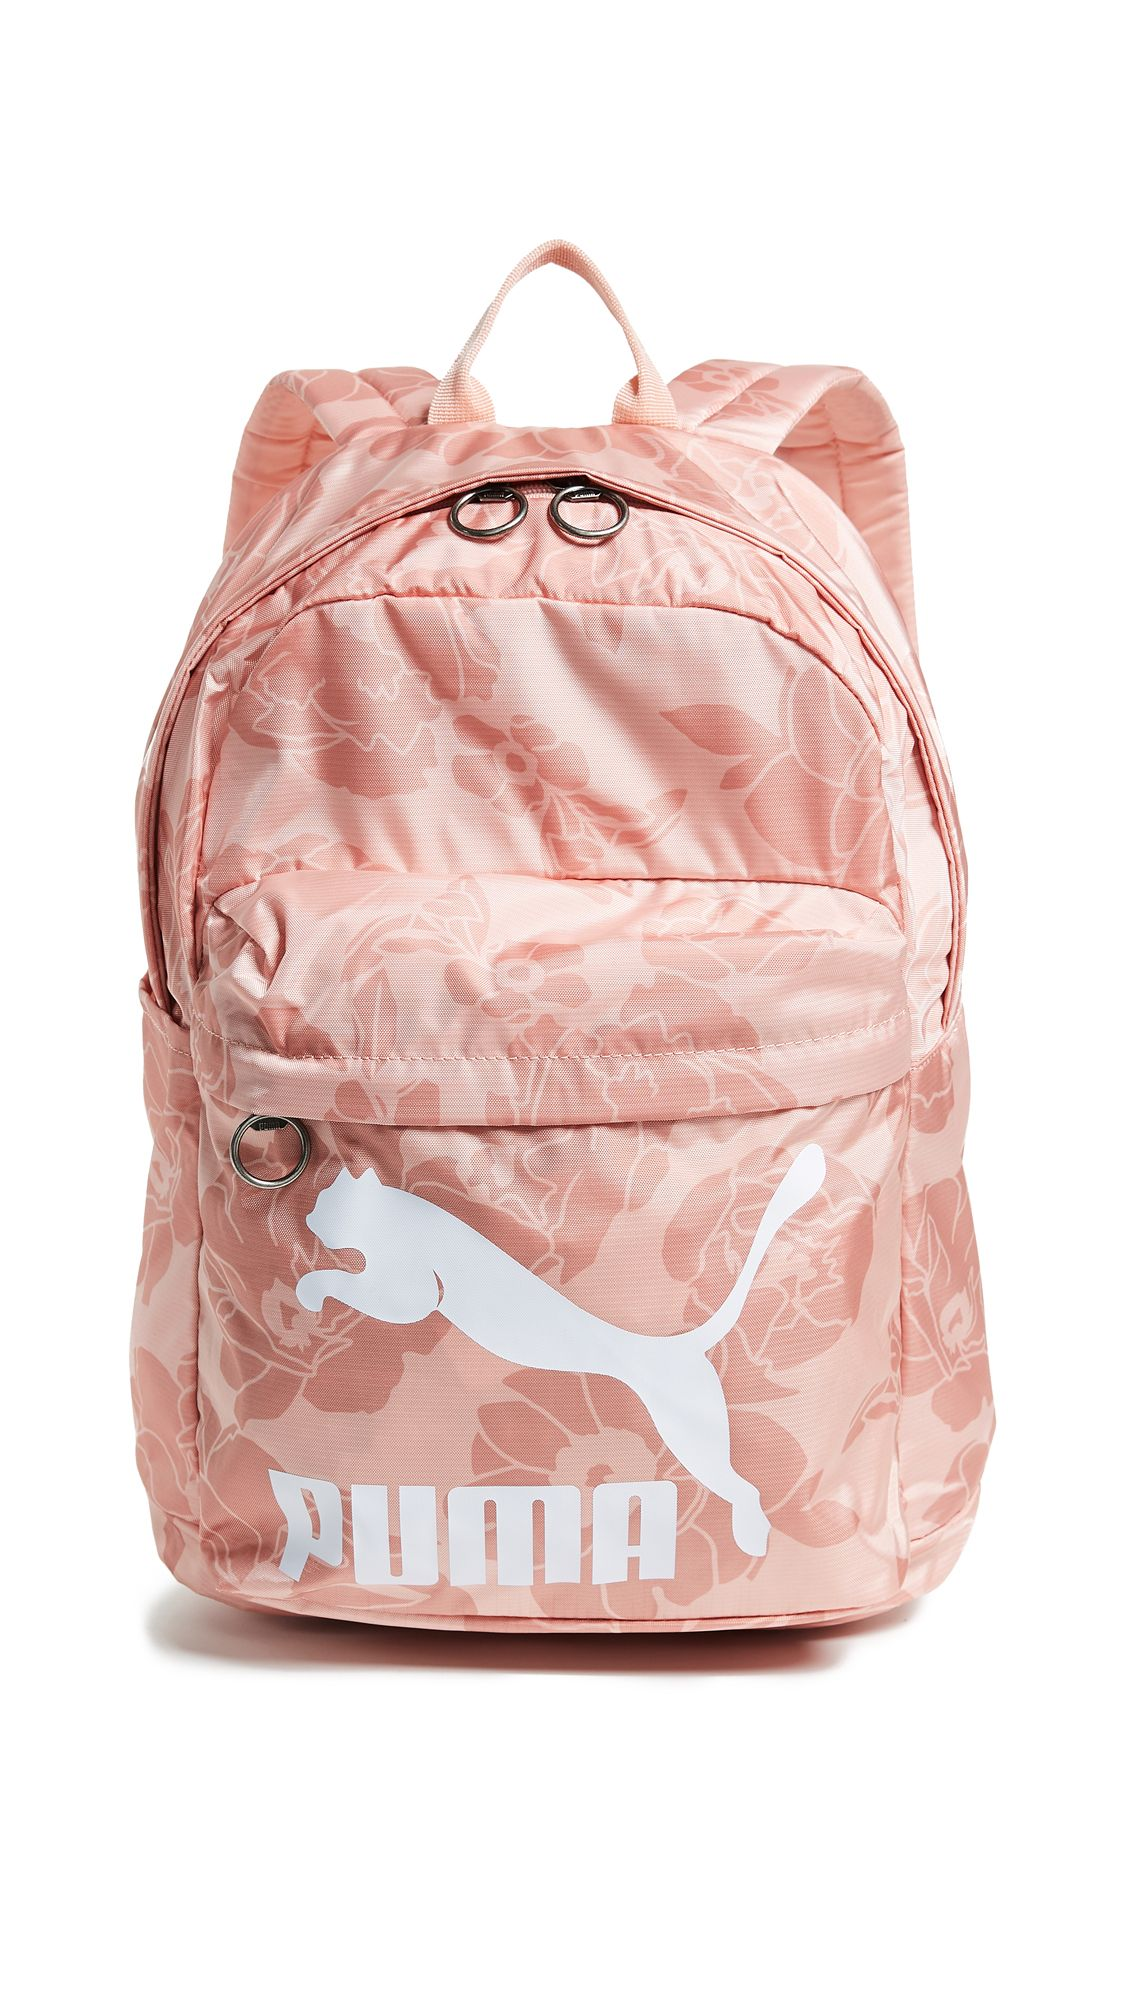 fe1fab605bde PUMA ORIGINALS BACKPACK.  puma  bags  nylon  backpacks